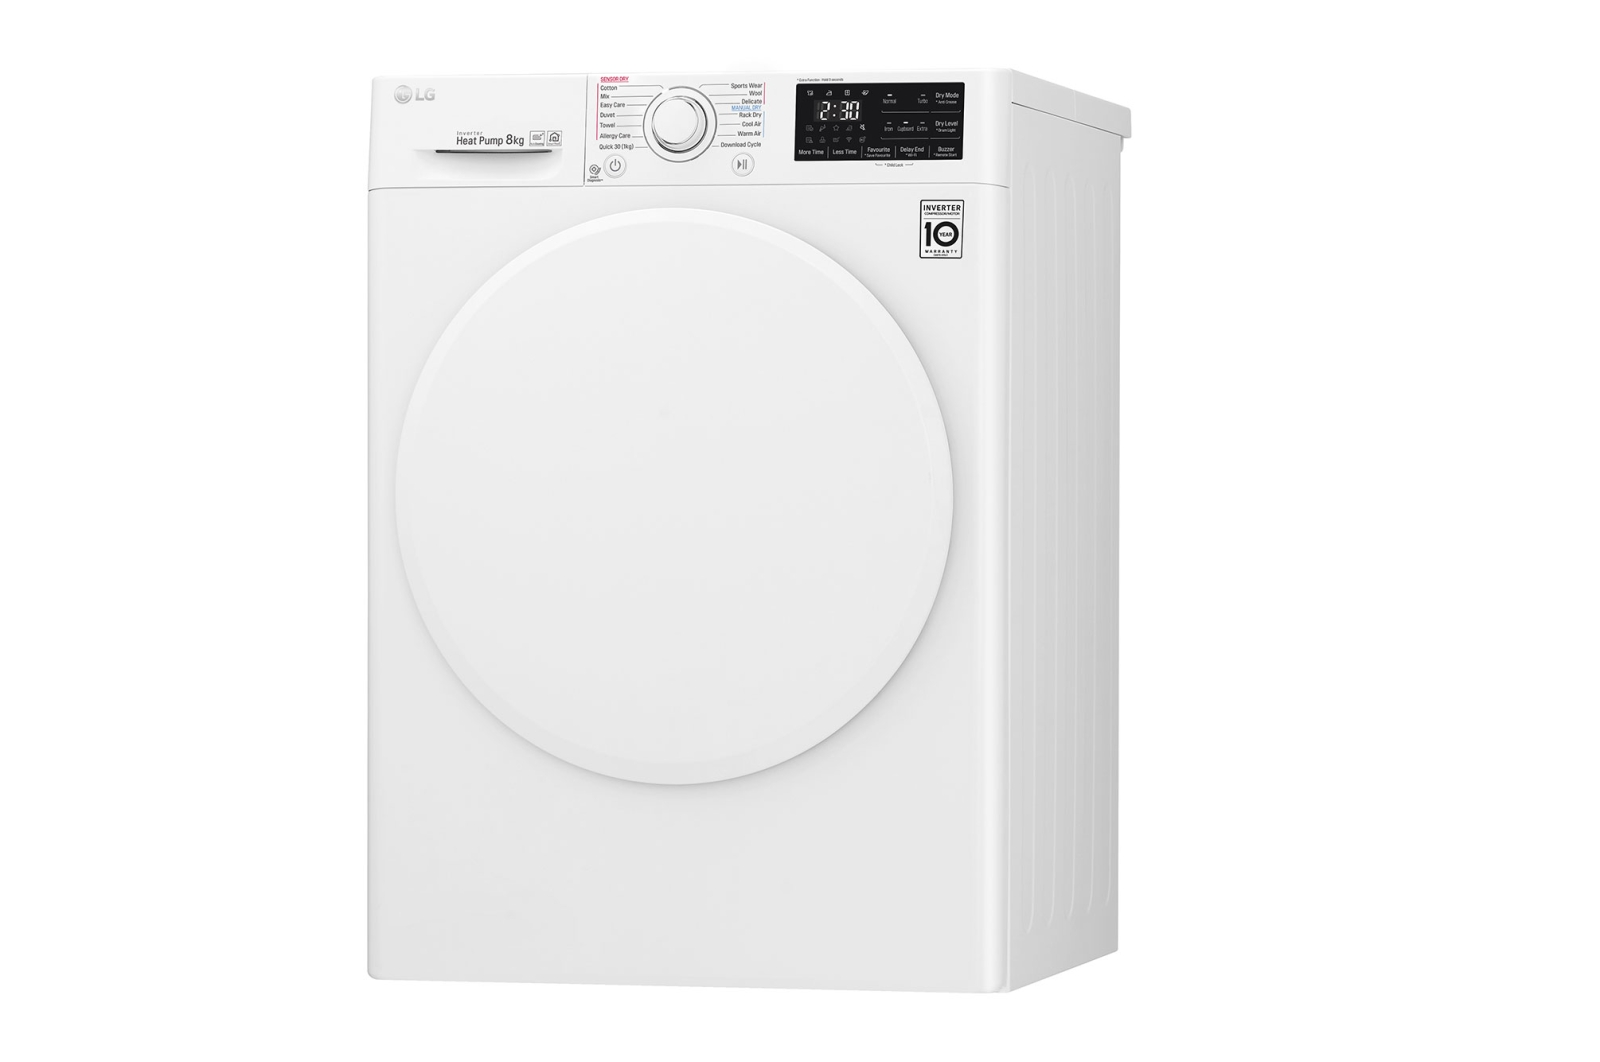 LG Heat Pump Dryer front LG's Four New Eco Friendly Clothes Dryers With Smart Technology